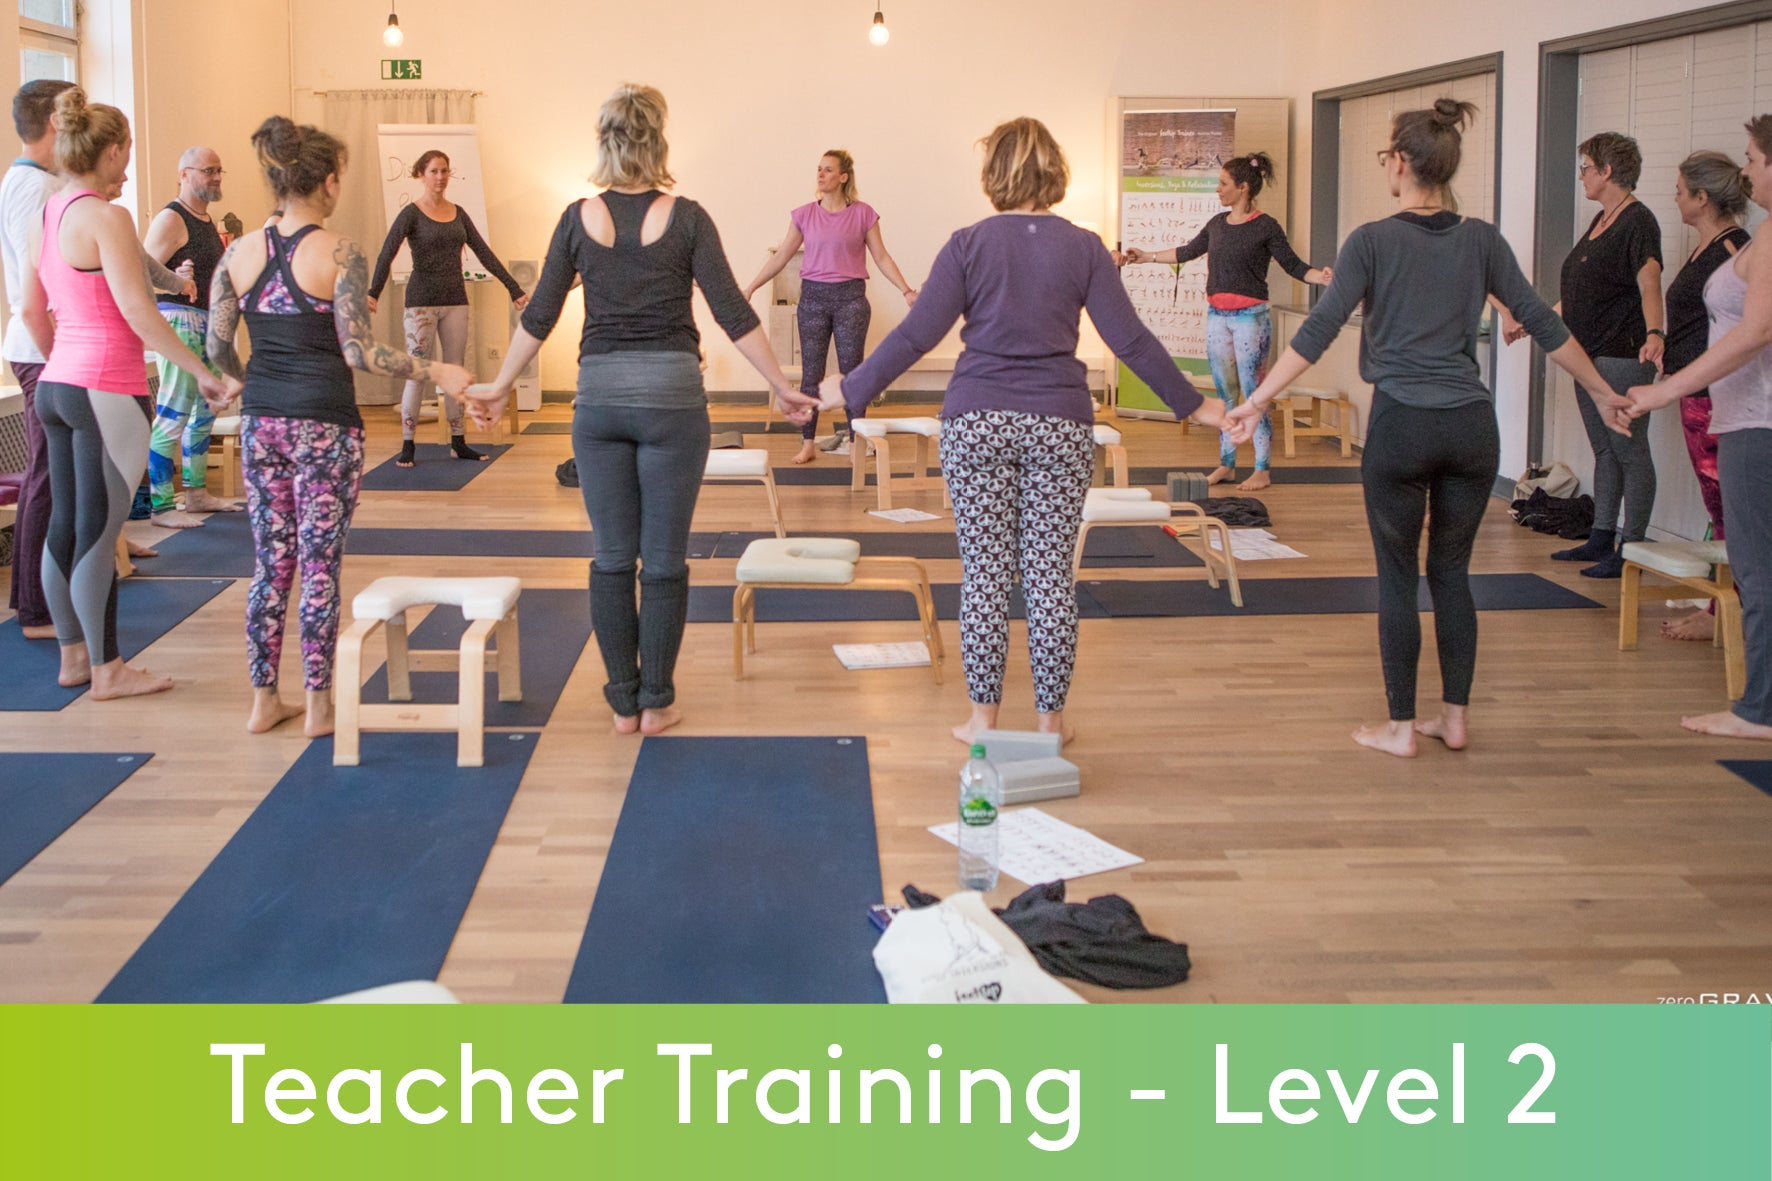 FeetUp® Teacher Training Level 2 - Bad Meinberg 22th -24th of October 2021 (incl. Accommodation)